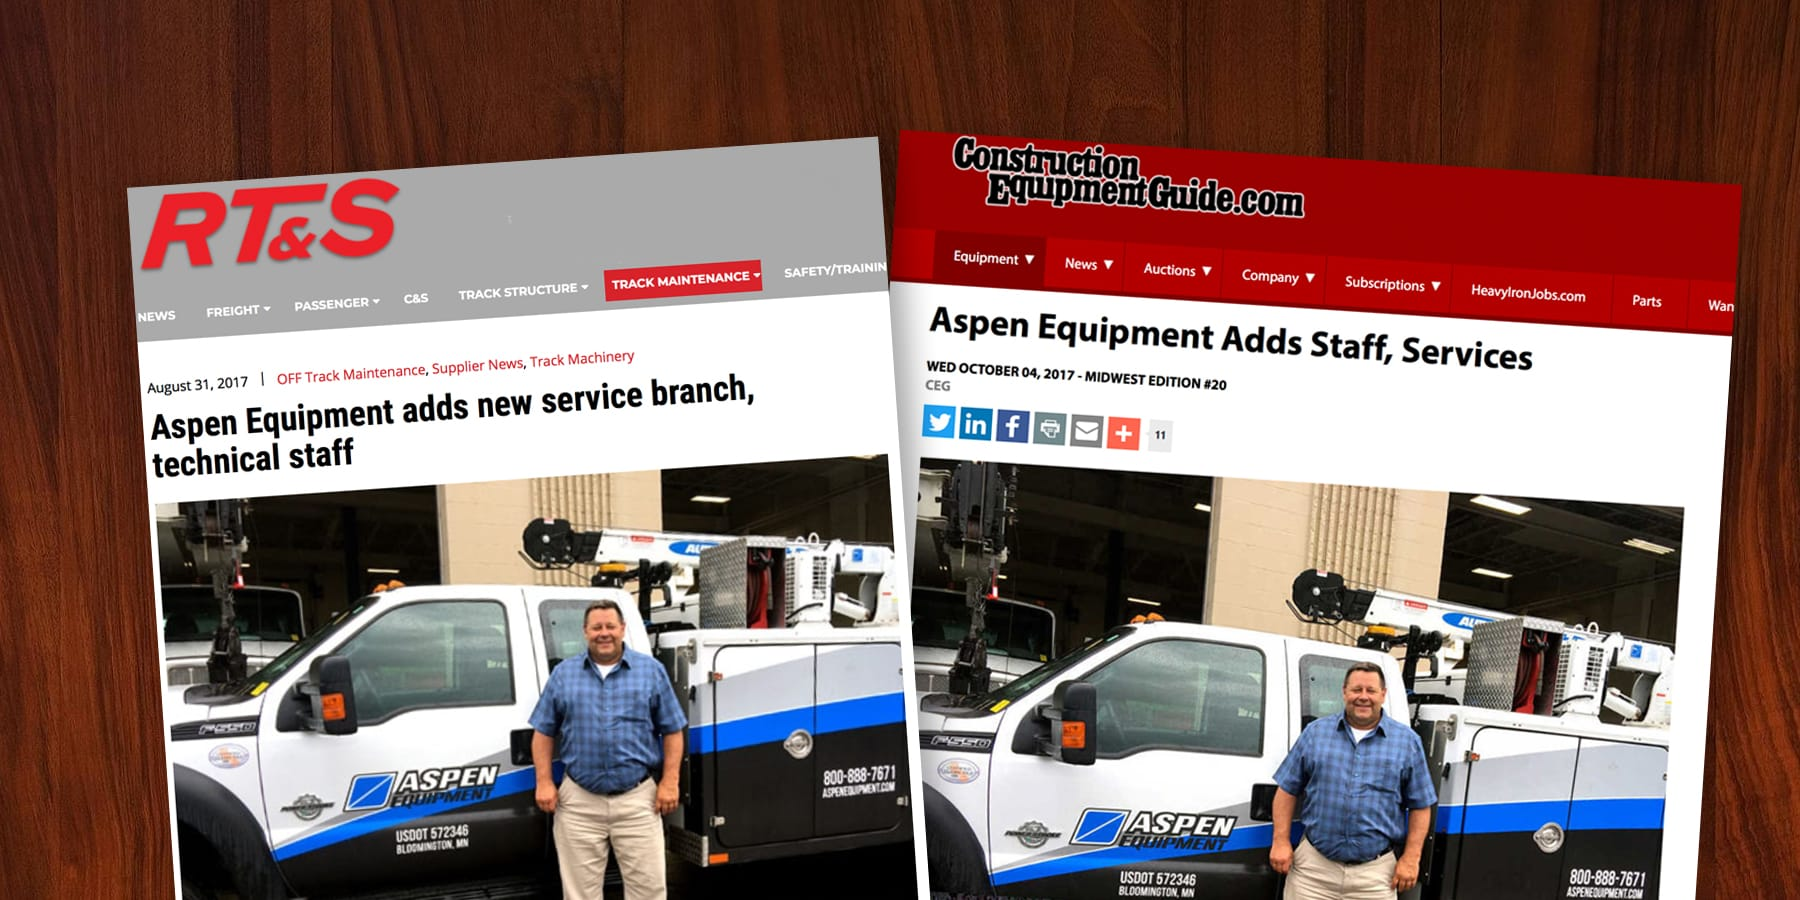 Aspen Equipment adds service and technical staff in Davenport, Iowa